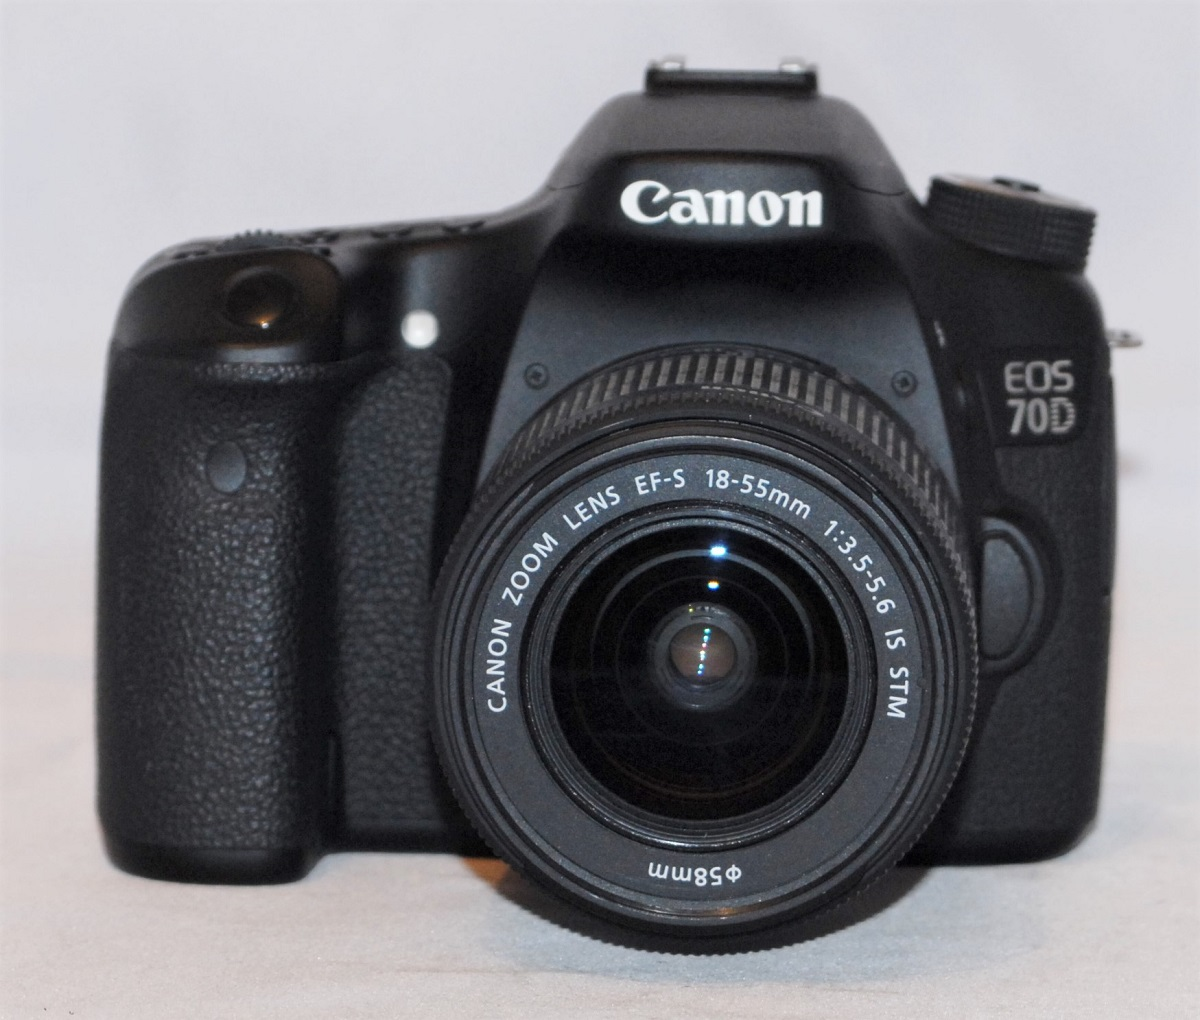 Canon EOS 70D + 18-55mm f3.5-f5.6 STM lens. Near mint condition. SOLD